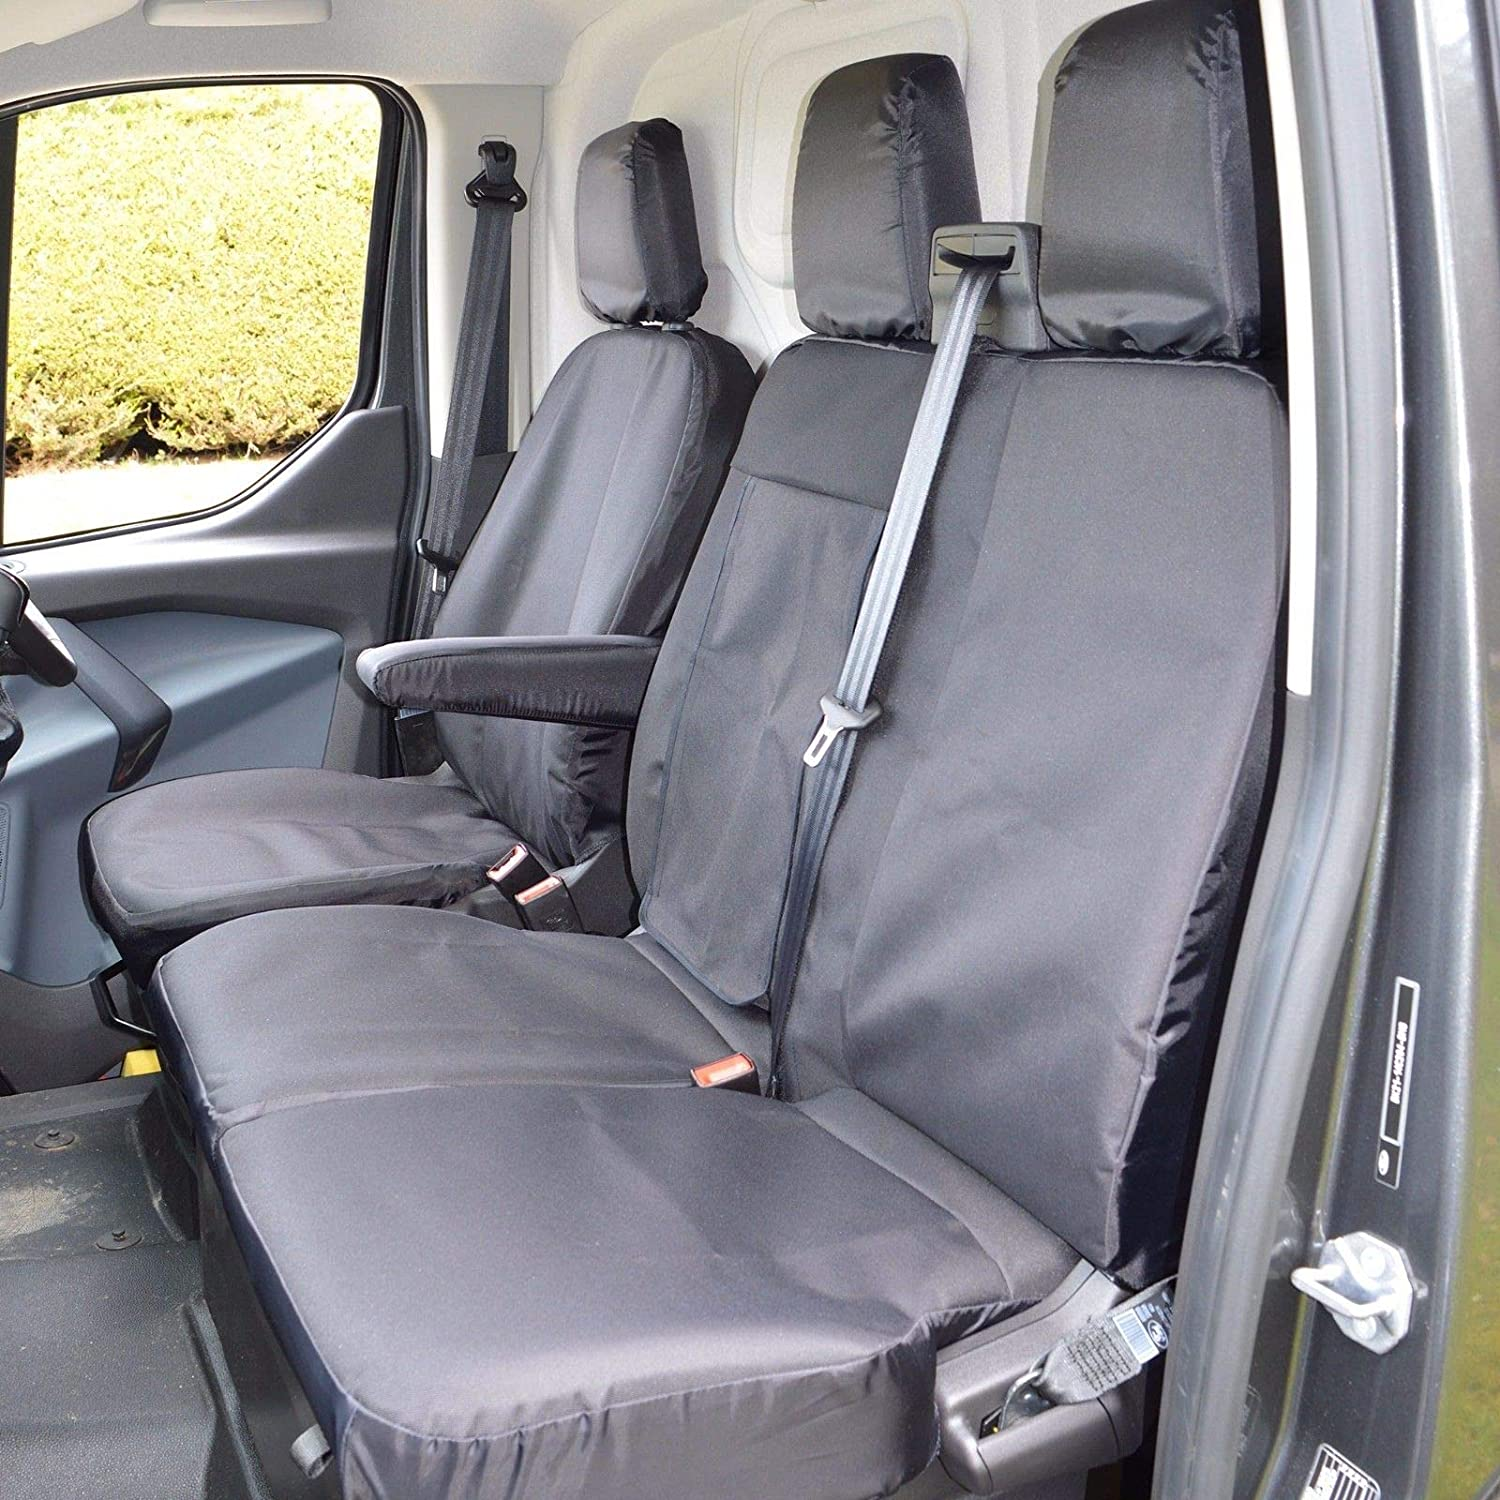 TO FIT A FORD TRANSIT VAN SEAT COVERS 2012 INDUS GREY 1 SINGLE AND 1 DOUBLE